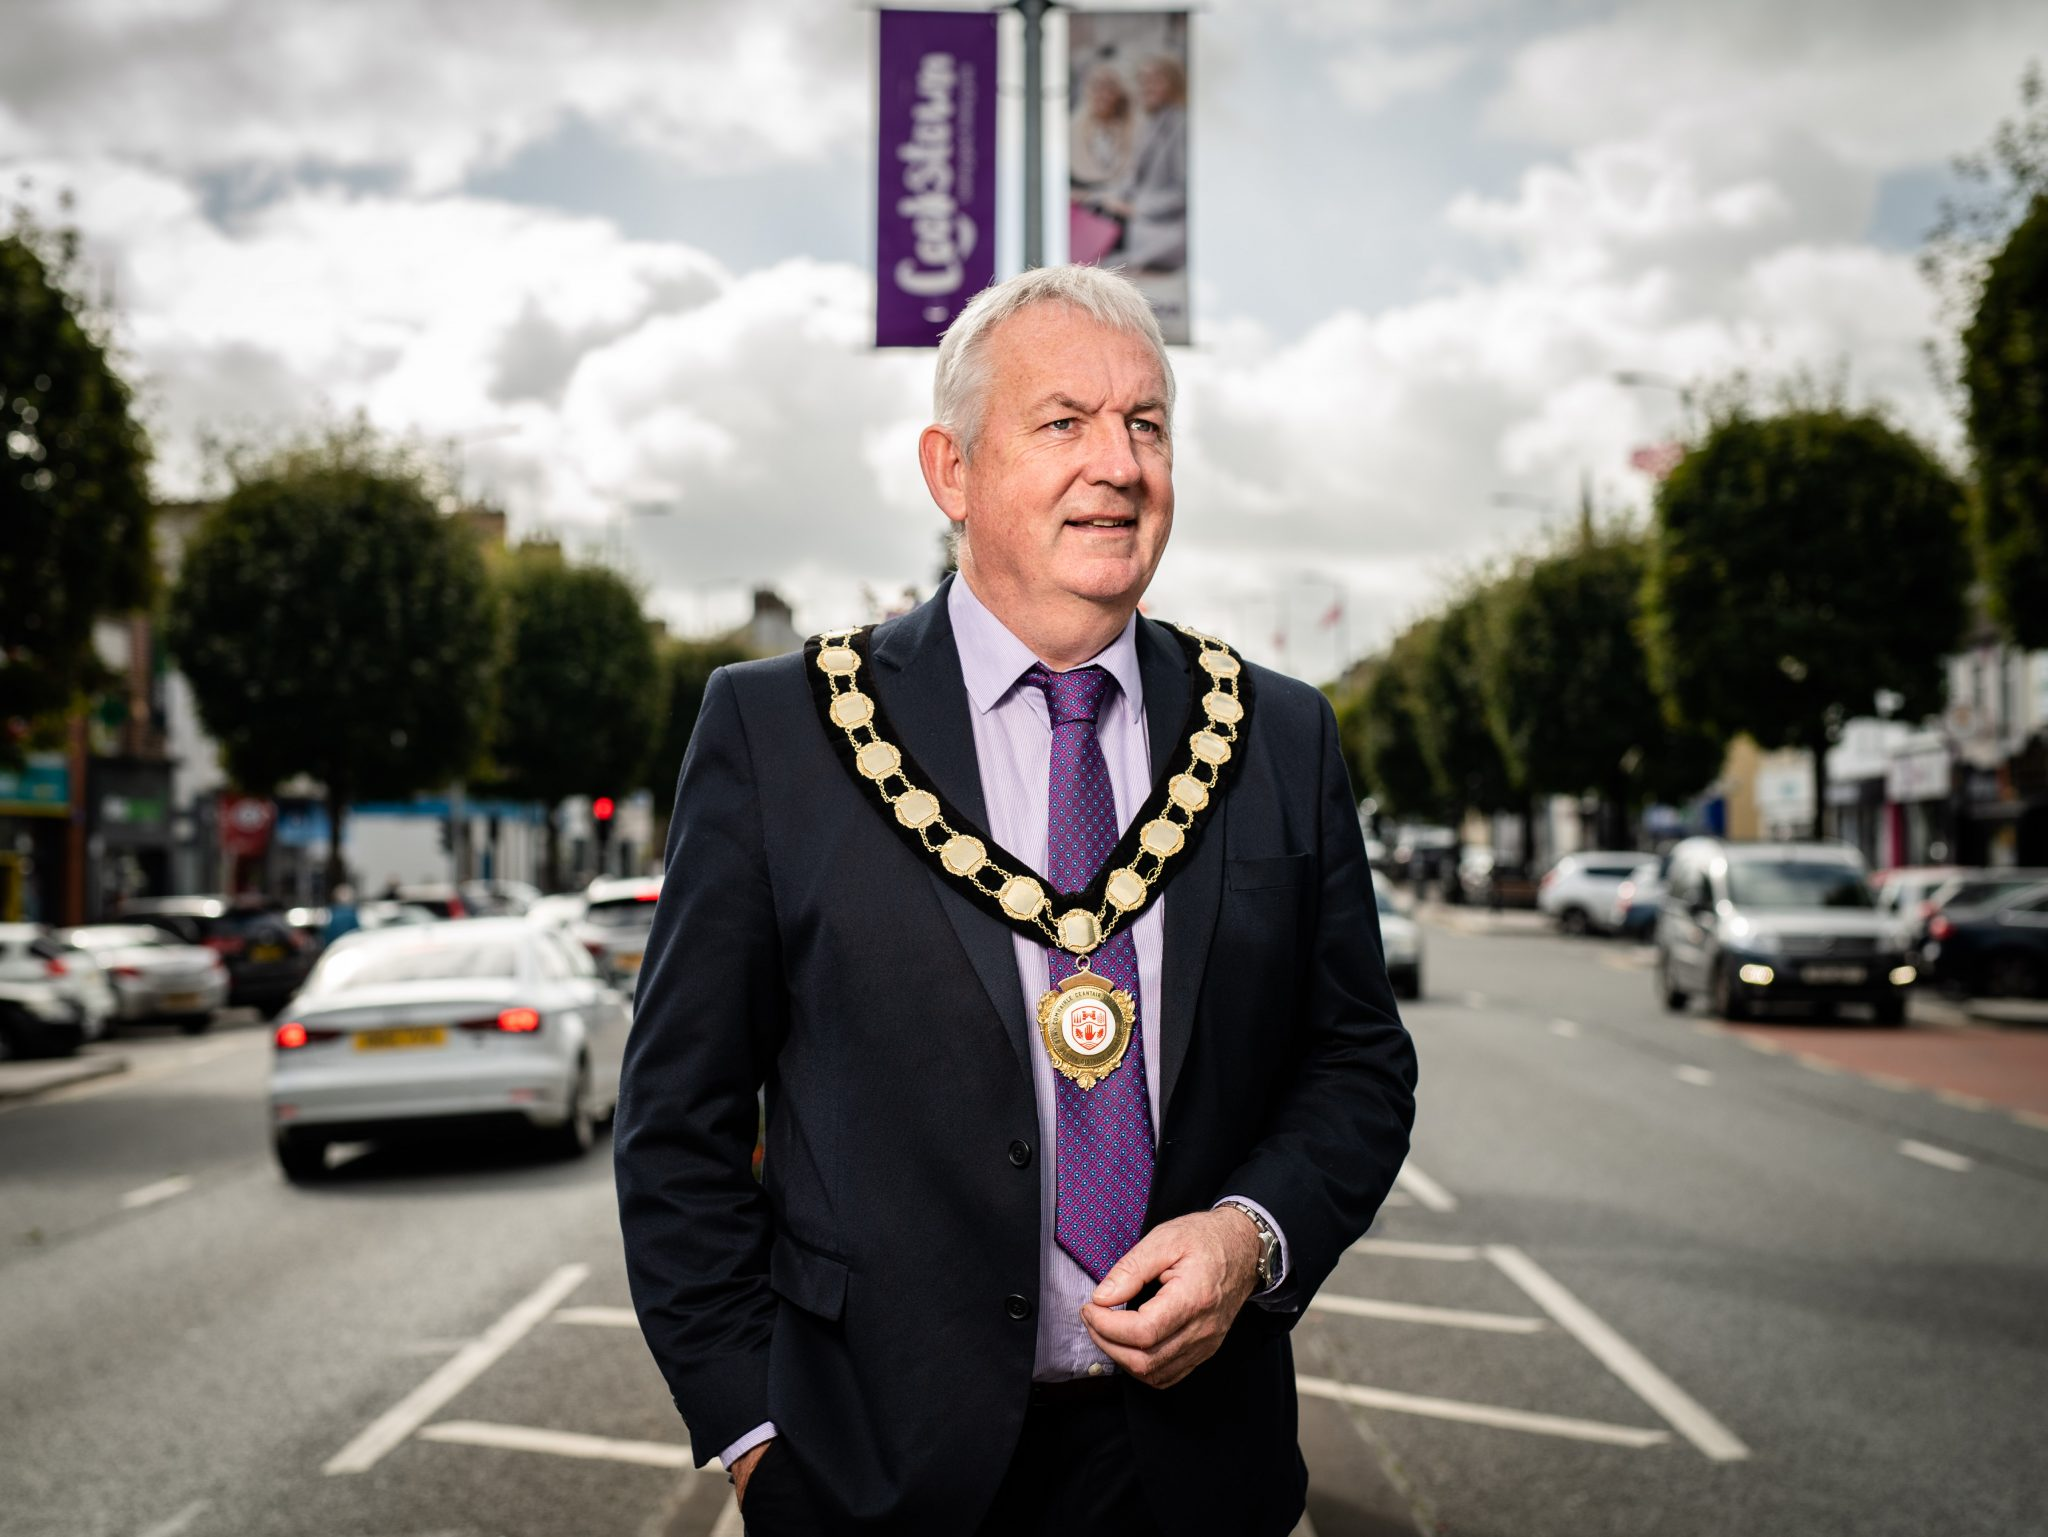 Chair of Mid Ulster District Council, Councillor Sean McPeake is encouraging people to vote for Cookstown by using its unique hashtag #GBHSCookstown. Credit: John Nguyen/Visa/PA Wire